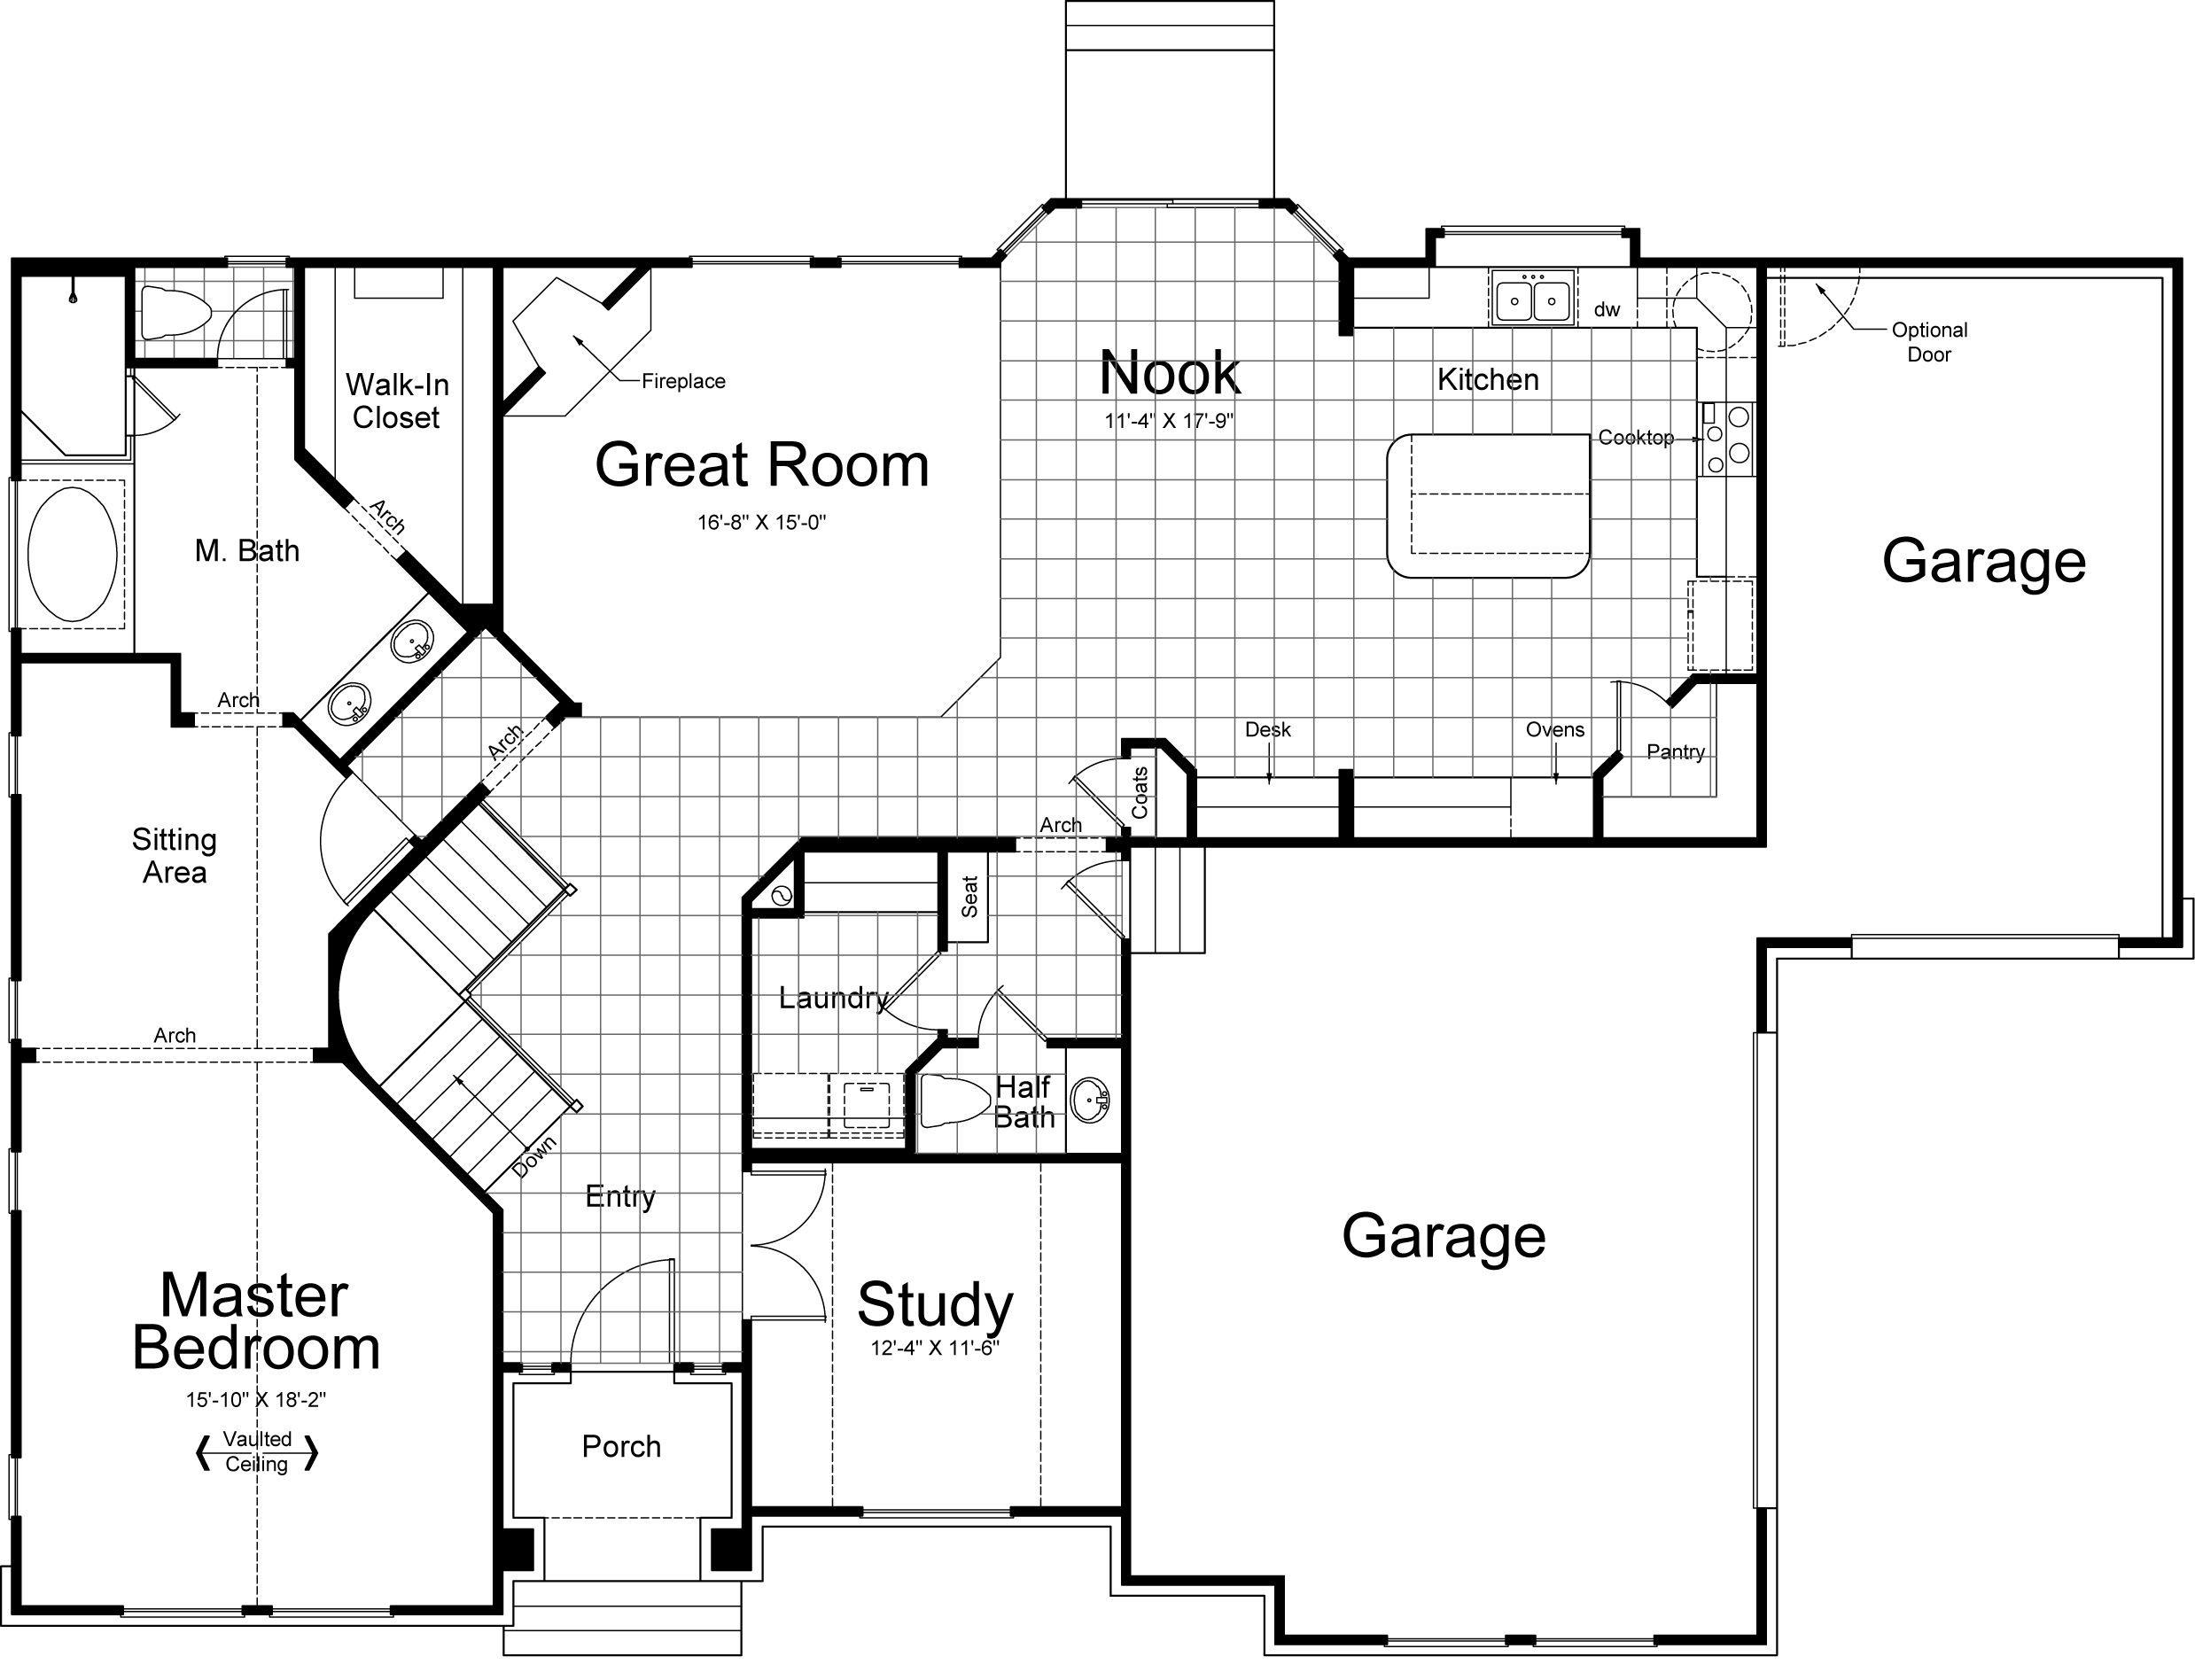 Messina Ivory Homes Floor Plan Main Level – Ivory Homes Hamilton Floor Plan